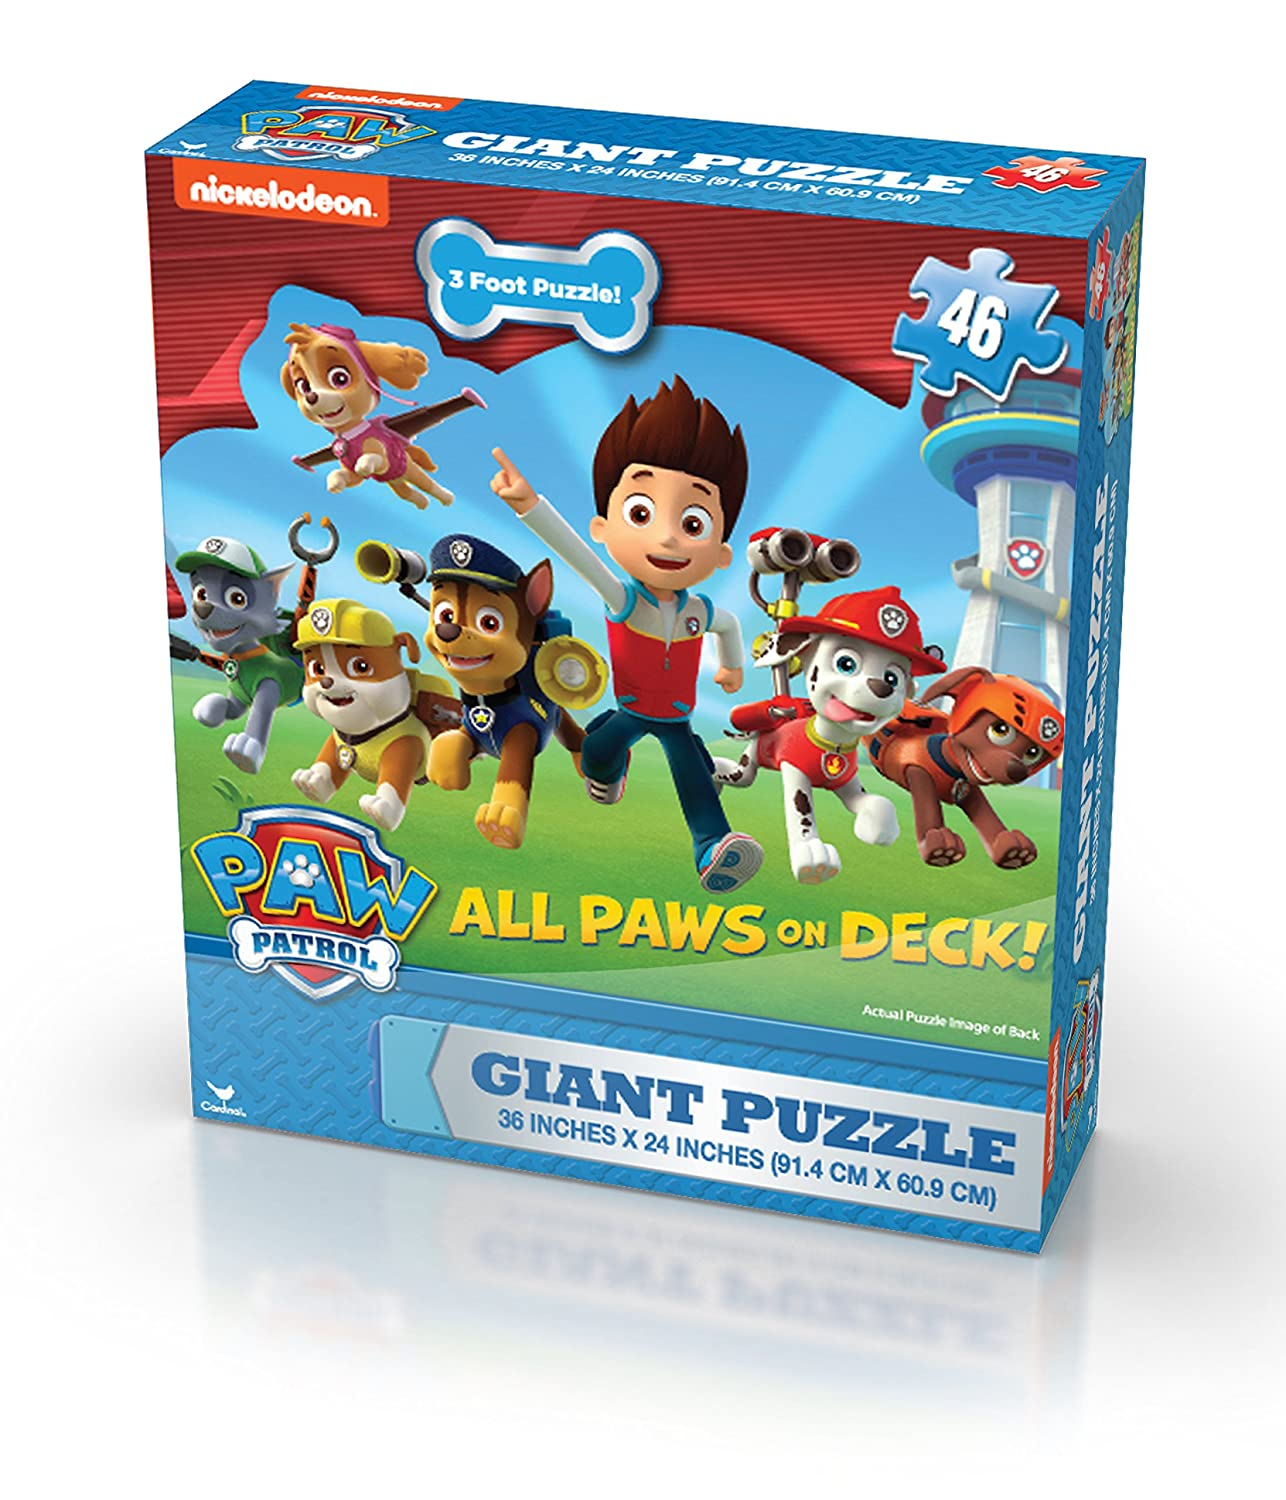 Paw Patrol Giant Puzzle (46-Piece) Cardinal Industries 6030549